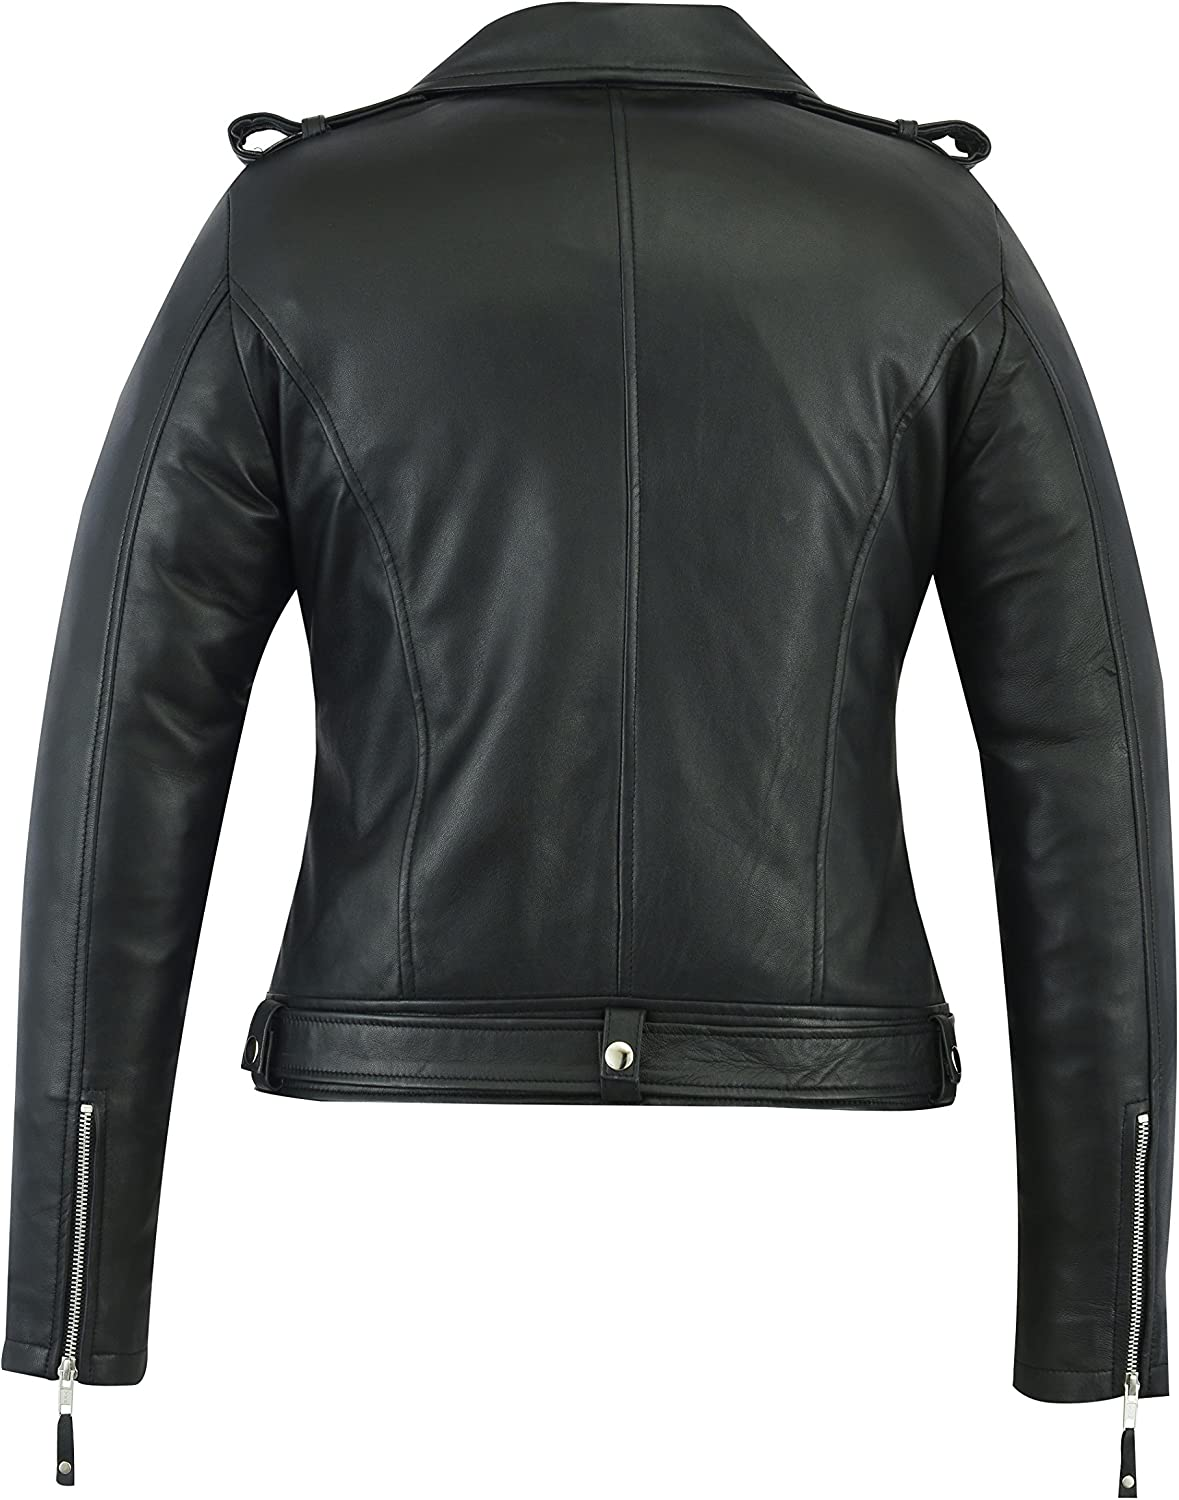 A/&H Apparel Women Motorcycle Genuine Sheep Lightweight Leather Jacket Casual